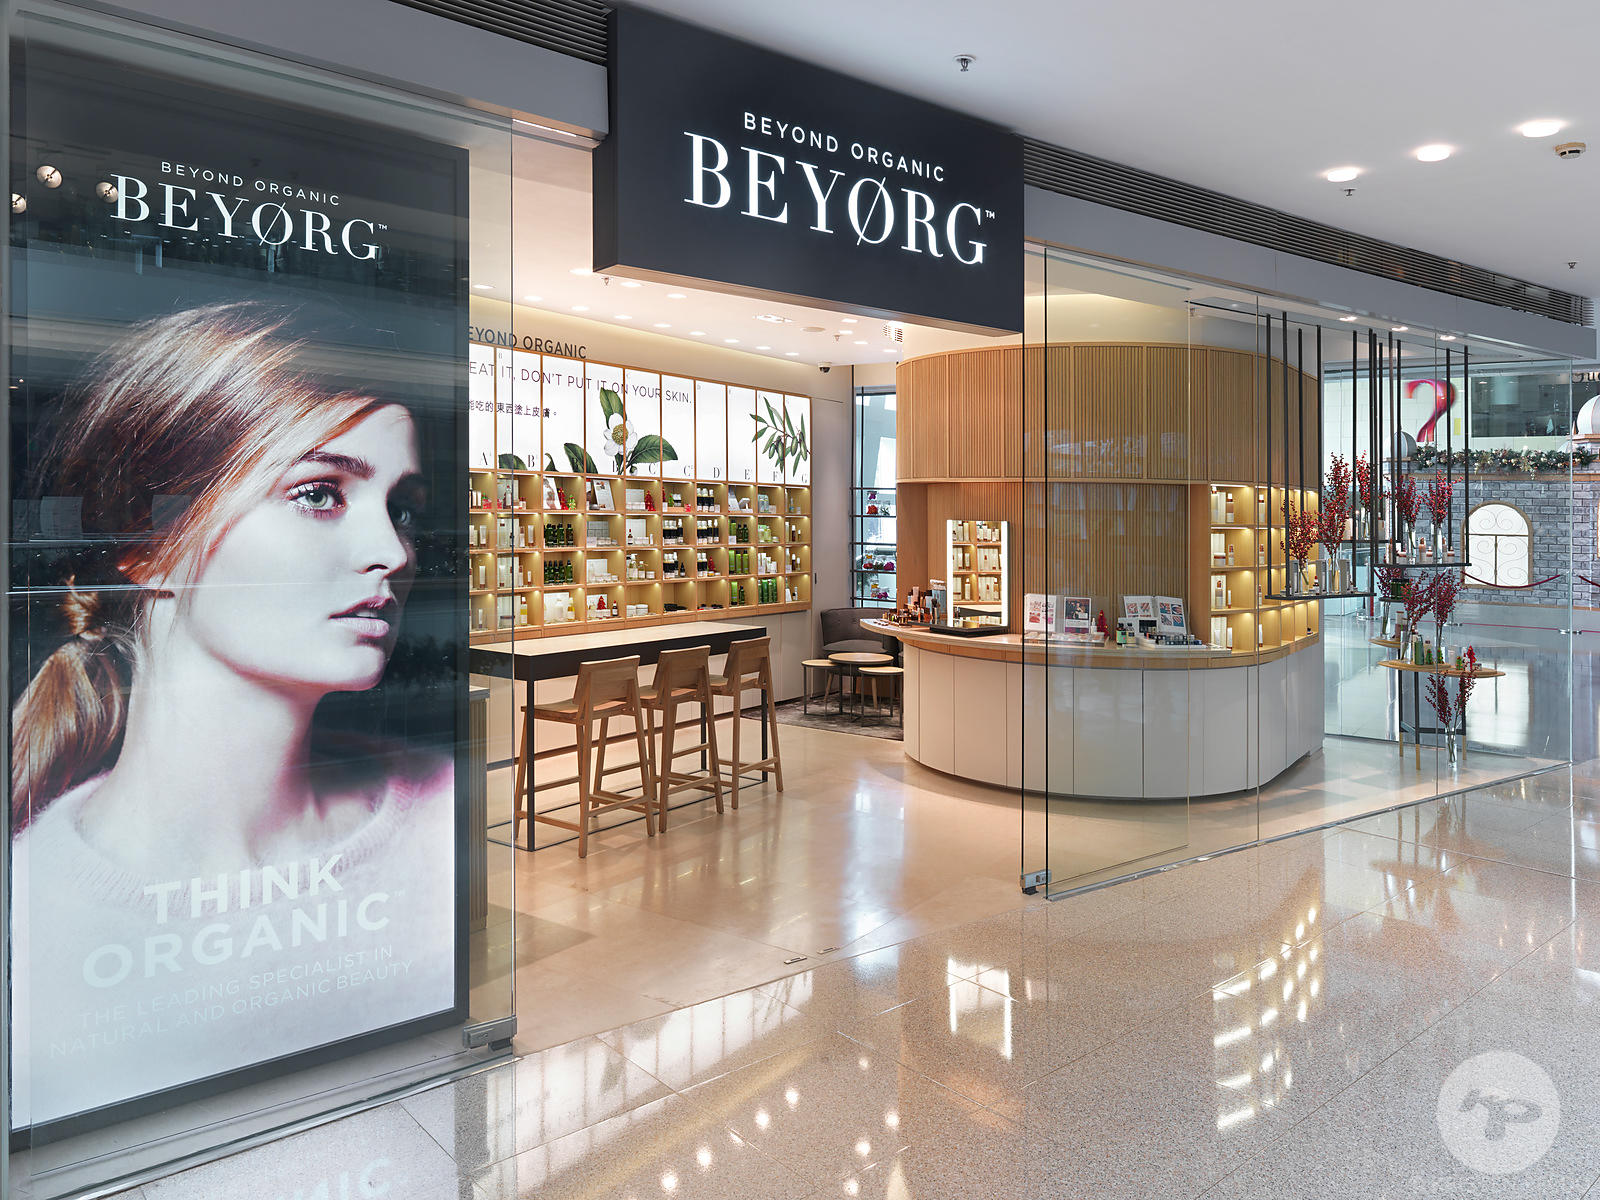 Retail architecture photographer - Beyorg boutique by Pure Creative Int. in Festival Walk, Kowloon, Hong Kong, Hong Kong, Chi...